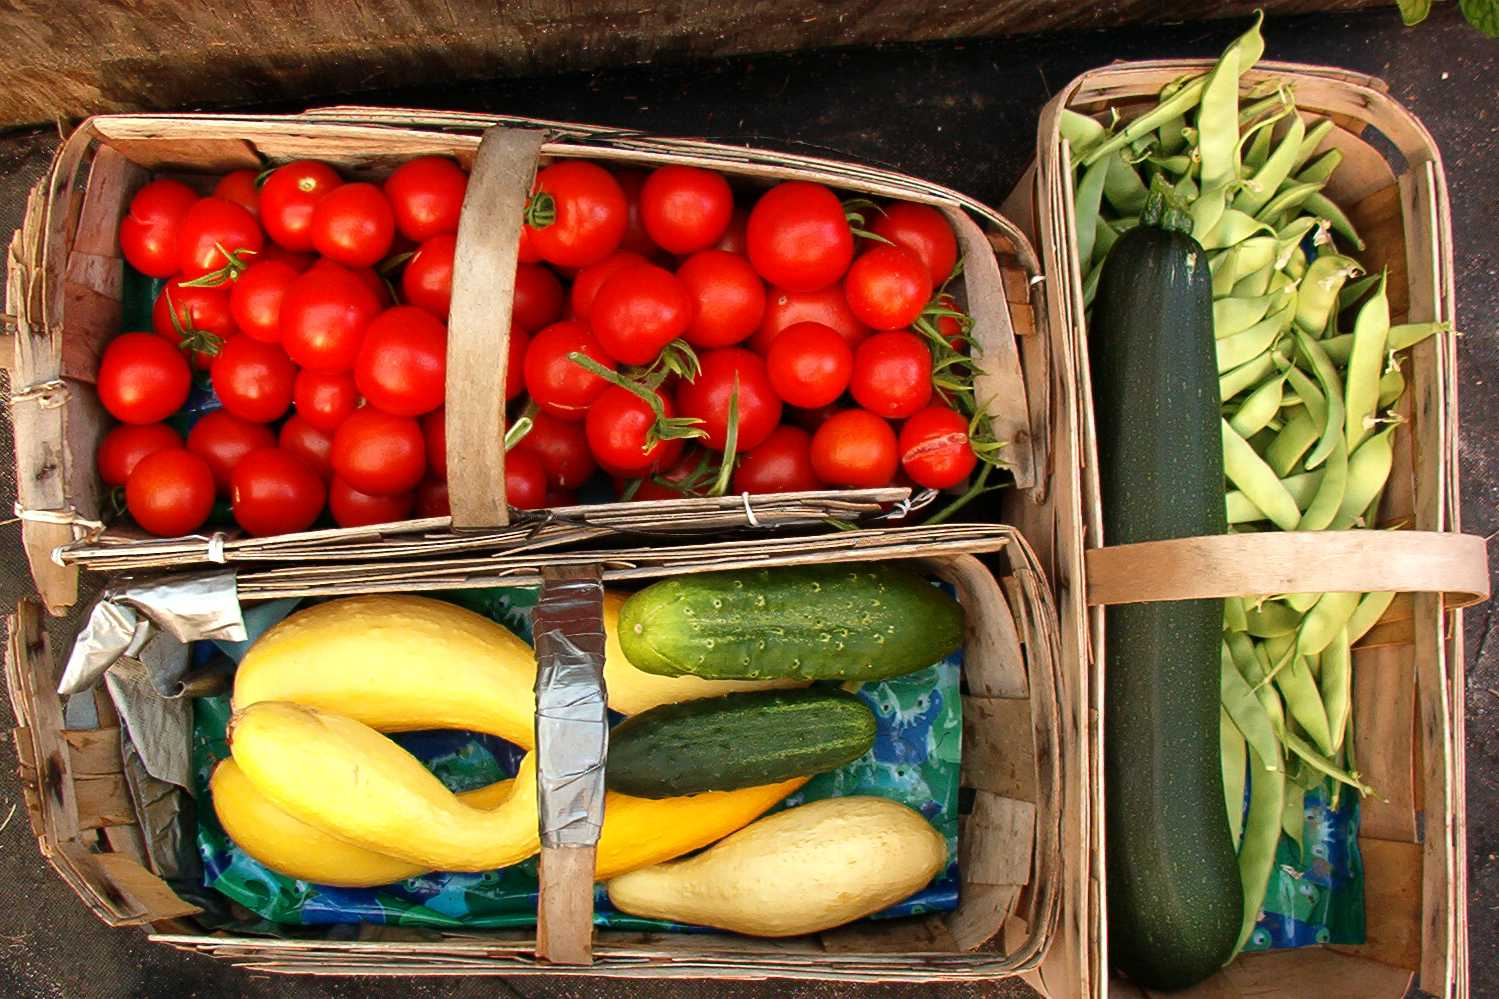 Freshly grown and packaged vegetables